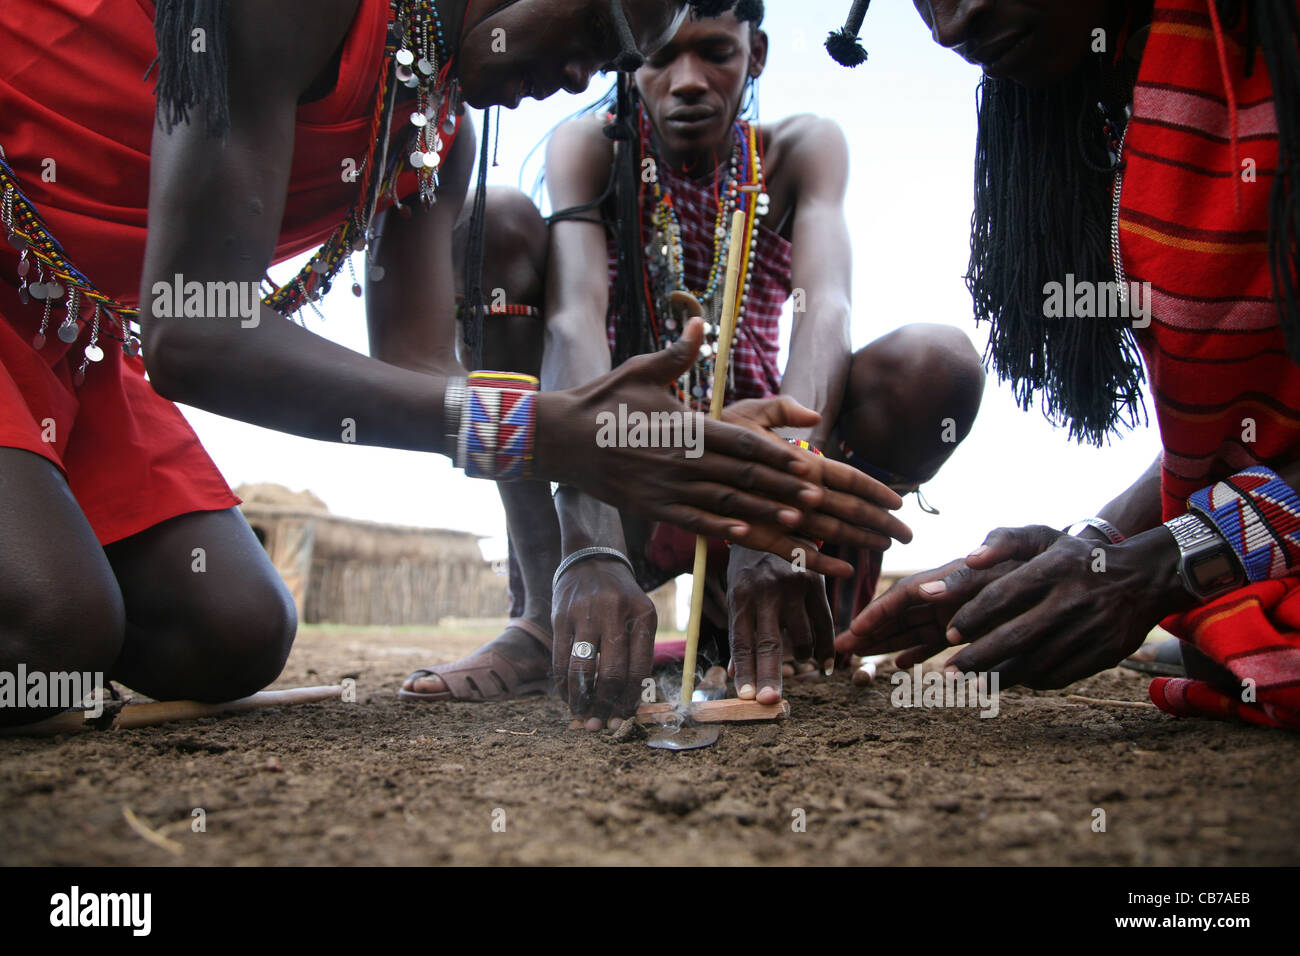 Young Masai men start a friction fire by rubbing two sticks together at their village in the Masai Mara National - Stock Image